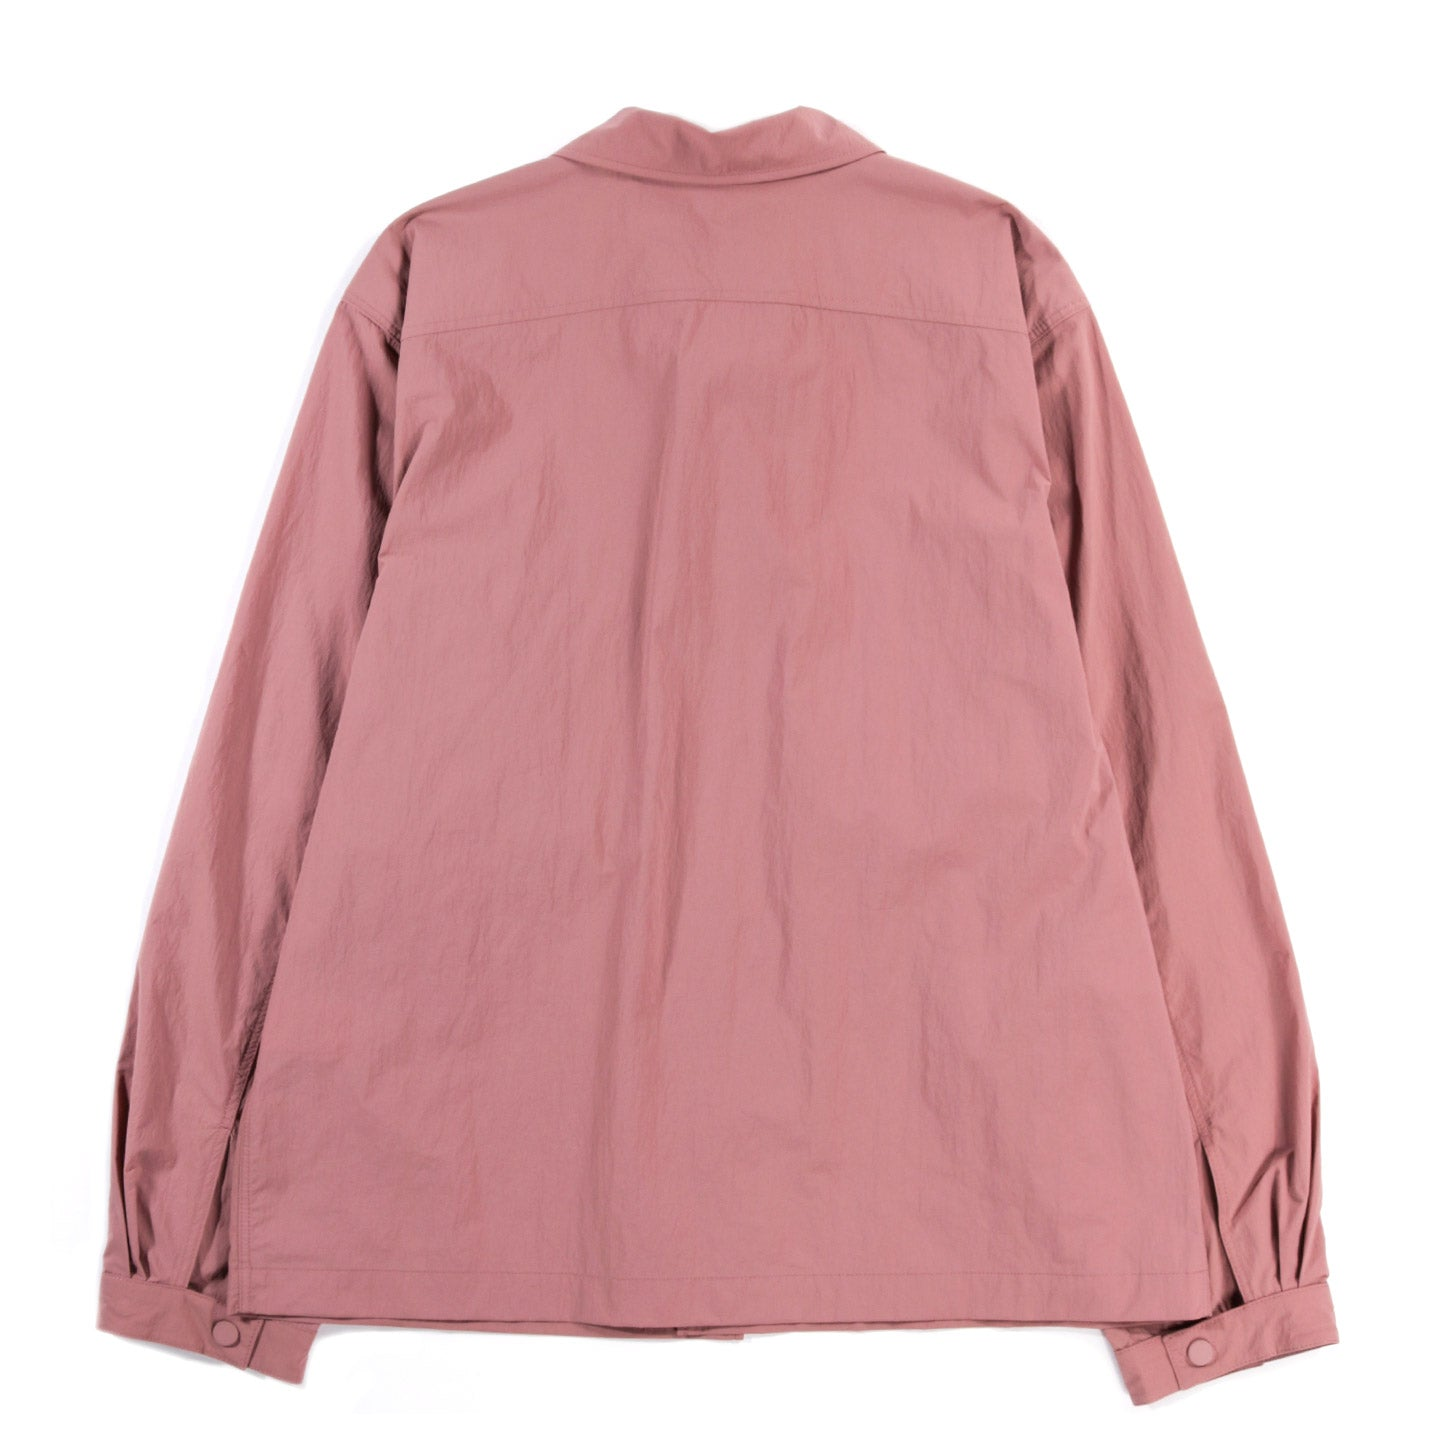 A KIND OF GUISE CLYDE SHIRT JACKET DUSTY ROSE